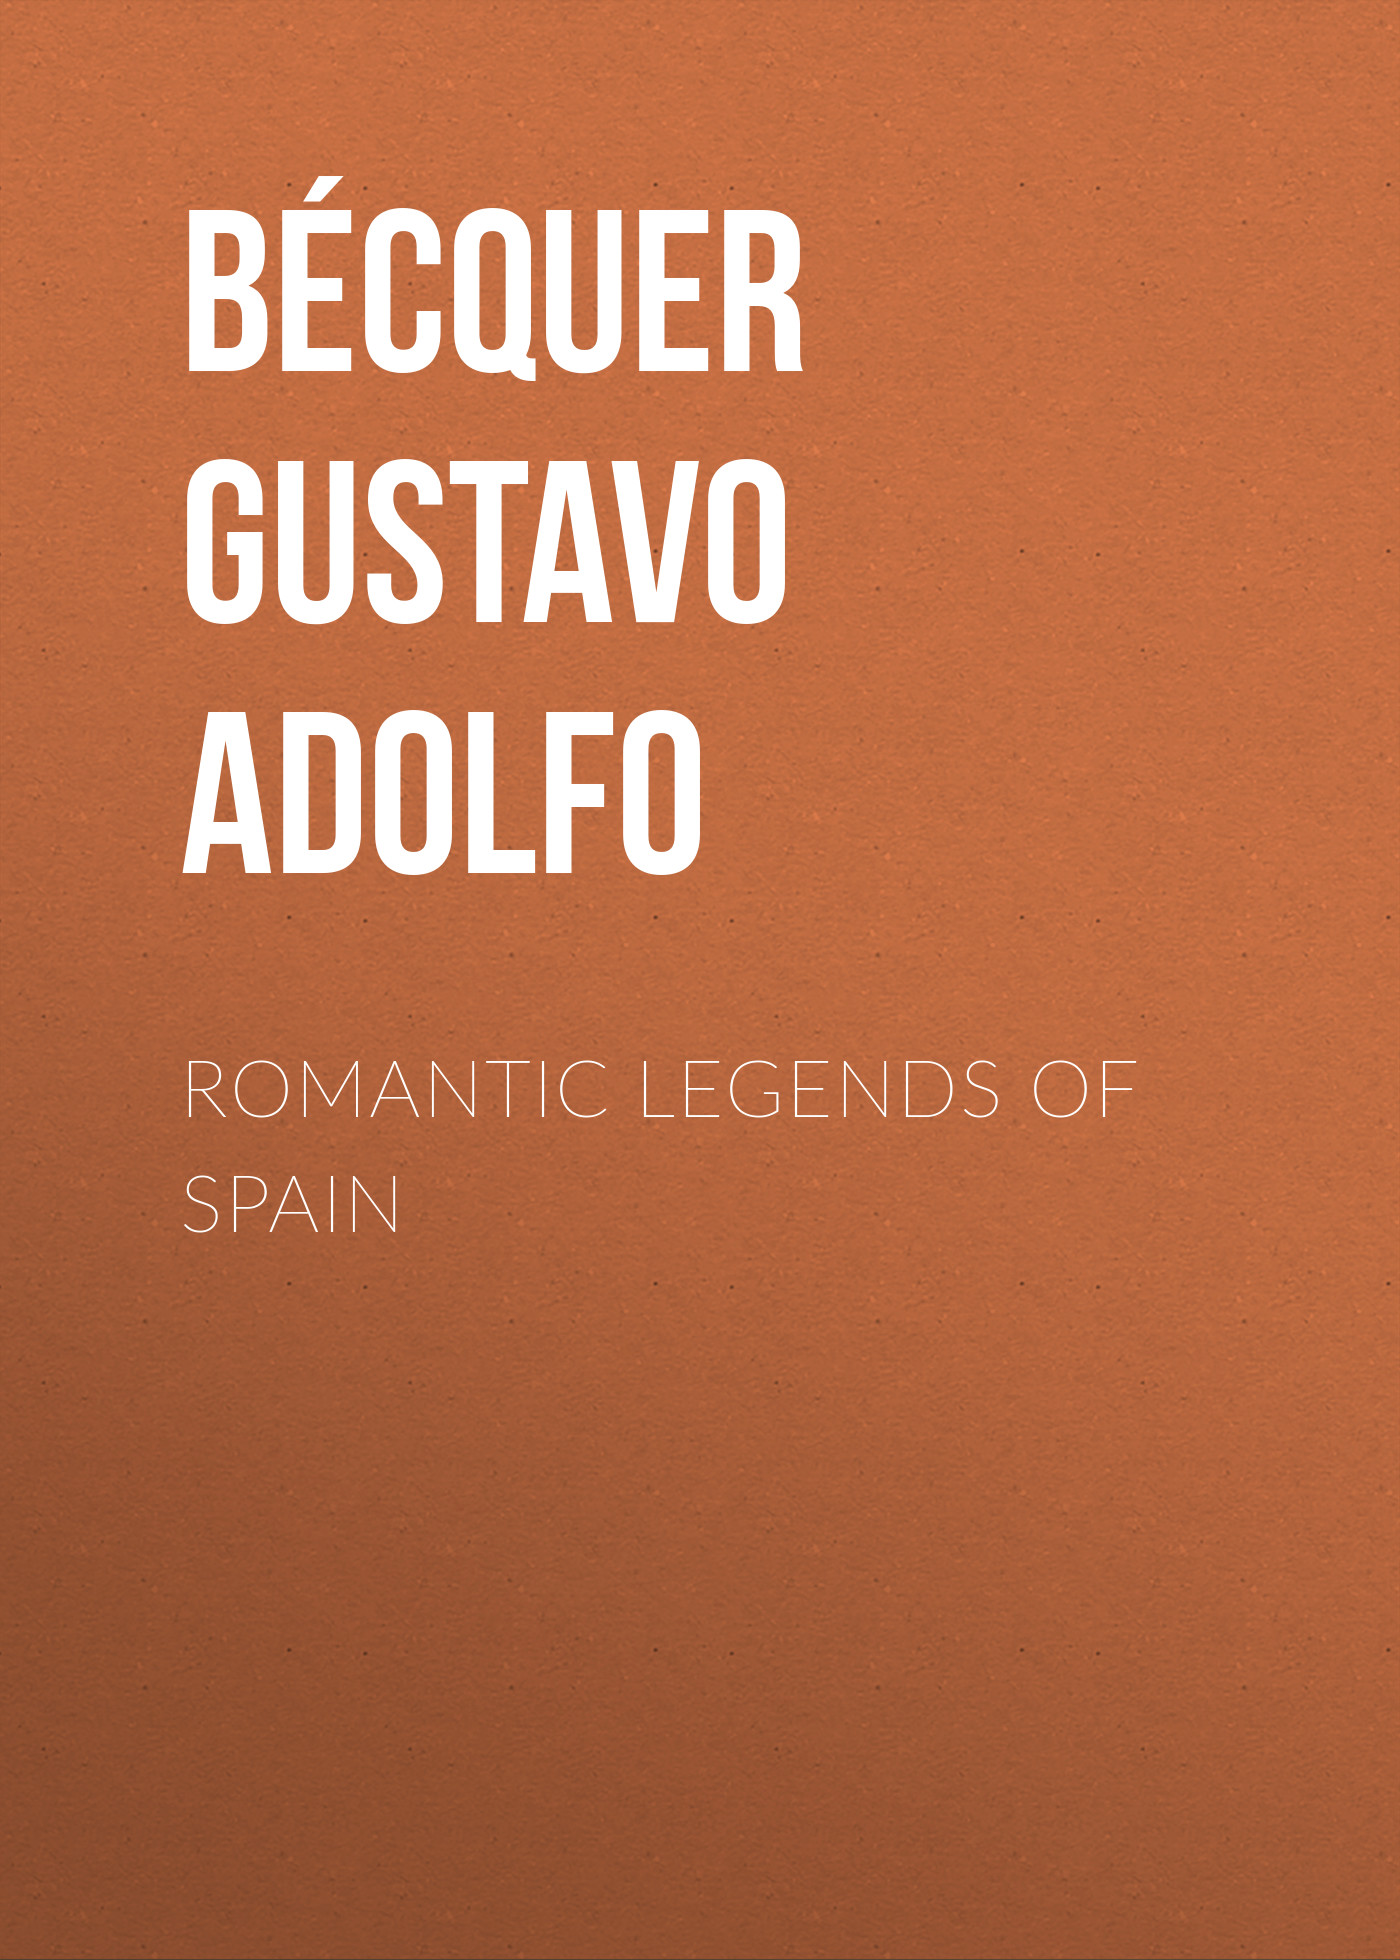 Bécquer Gustavo Adolfo Romantic legends of Spain gustavo cisneros un empresario global